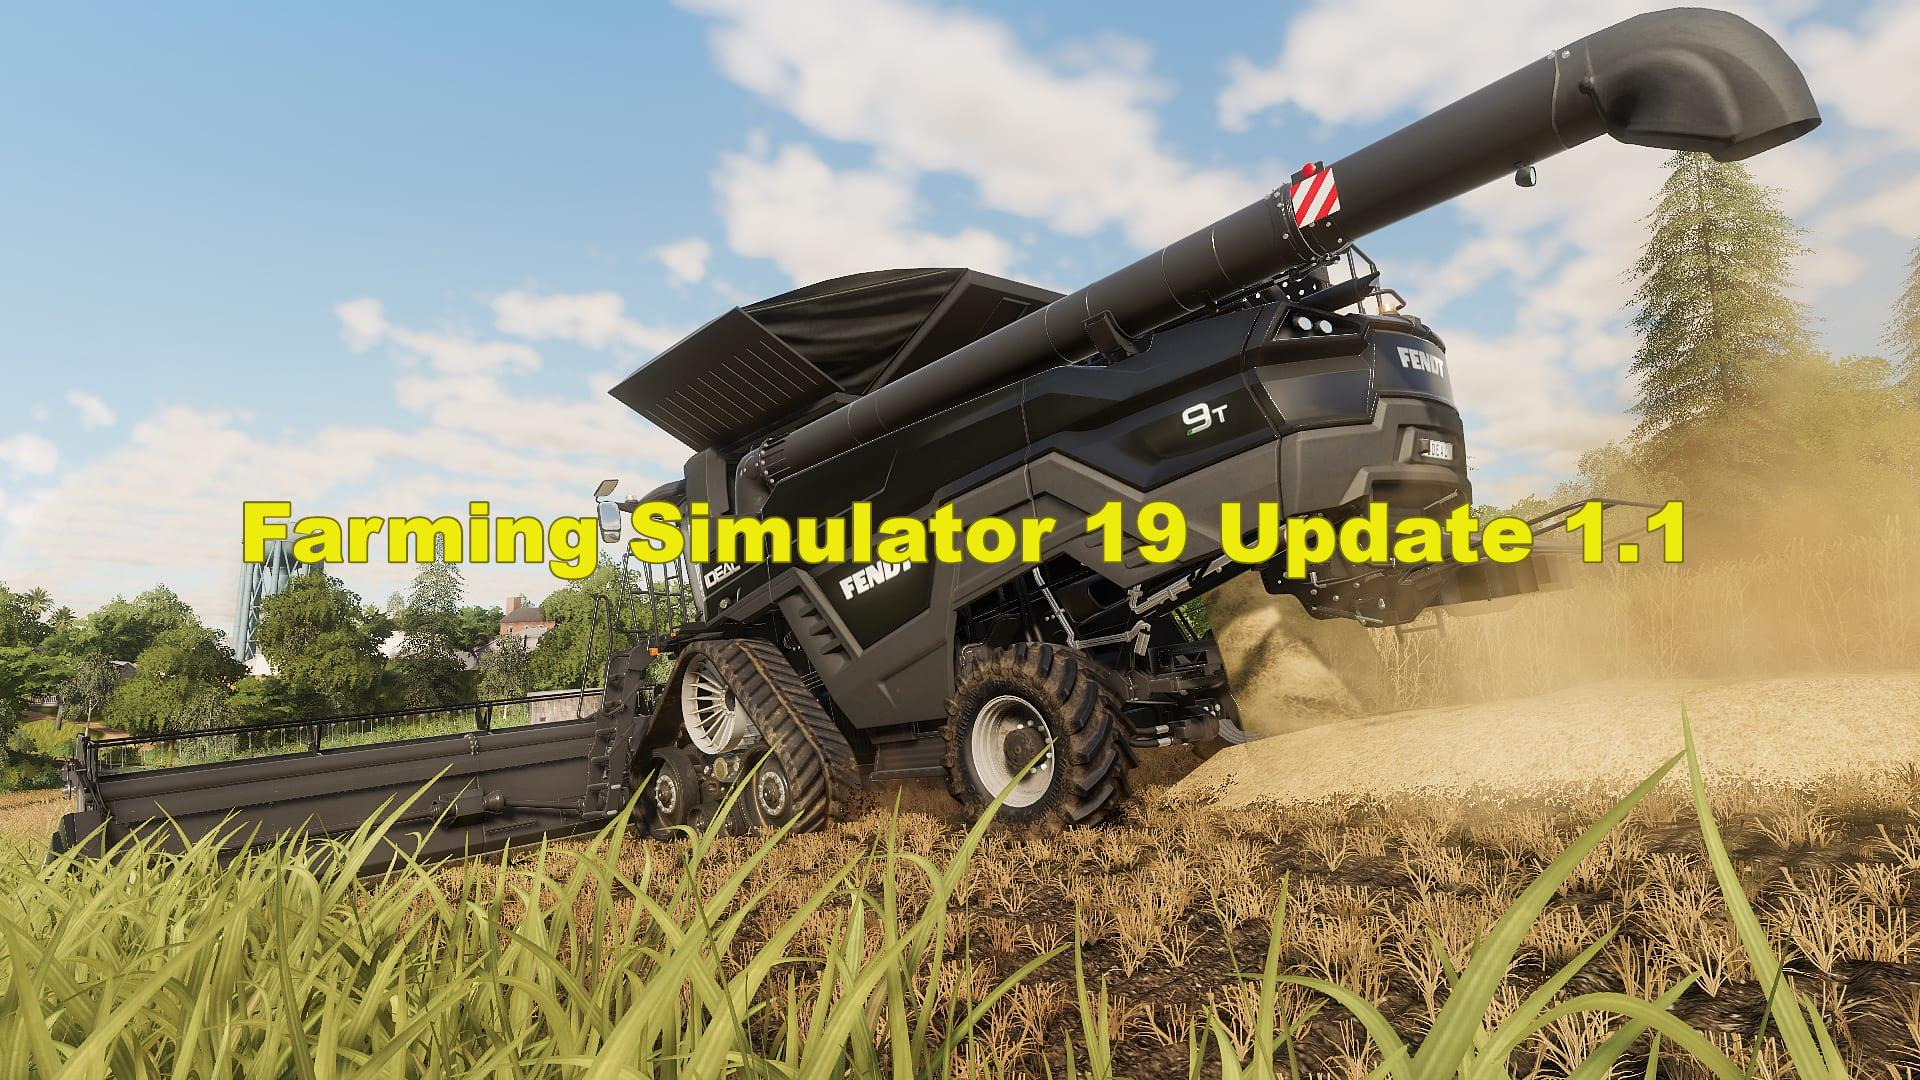 Farming Simulator 19 Update Patch V1 1 Farming Simulator 19